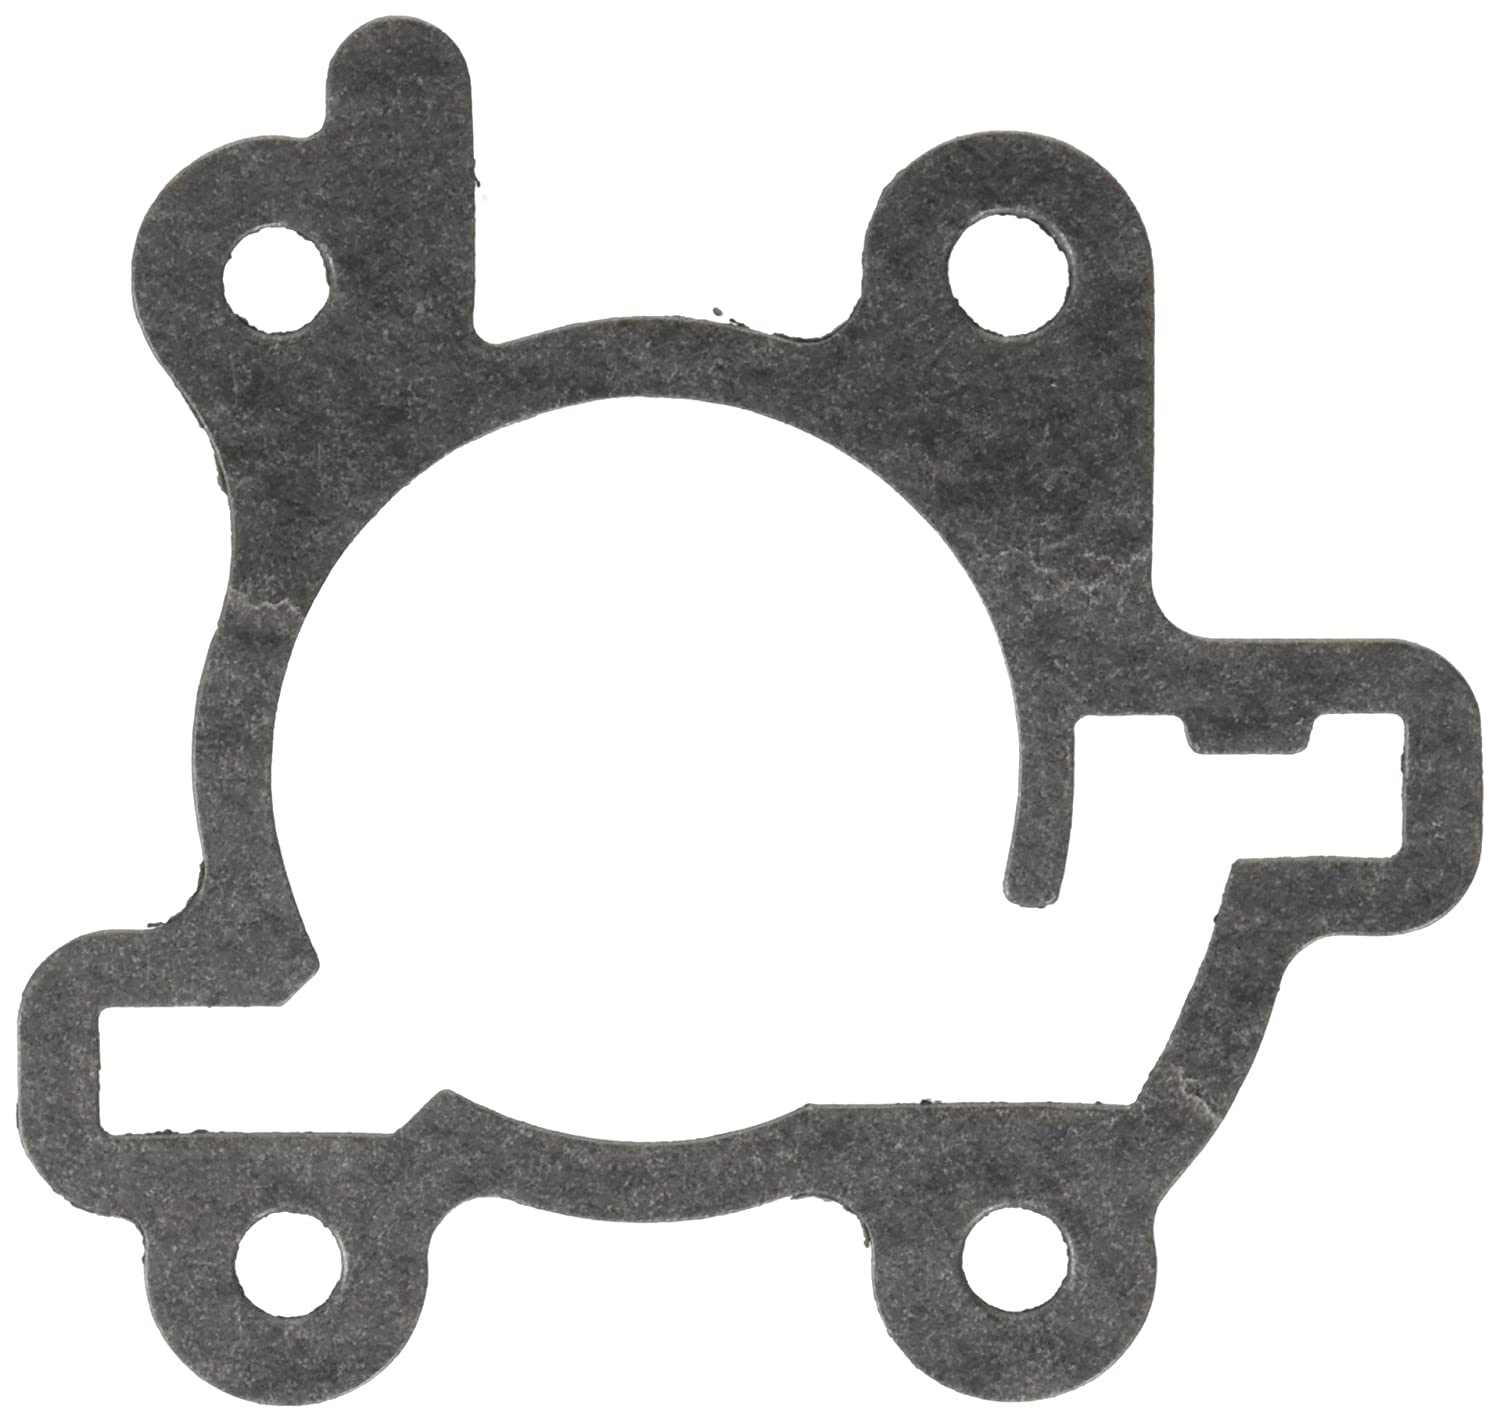 MAHLE Original G32553 Fuel Injection Throttle Body Mounting Gasket